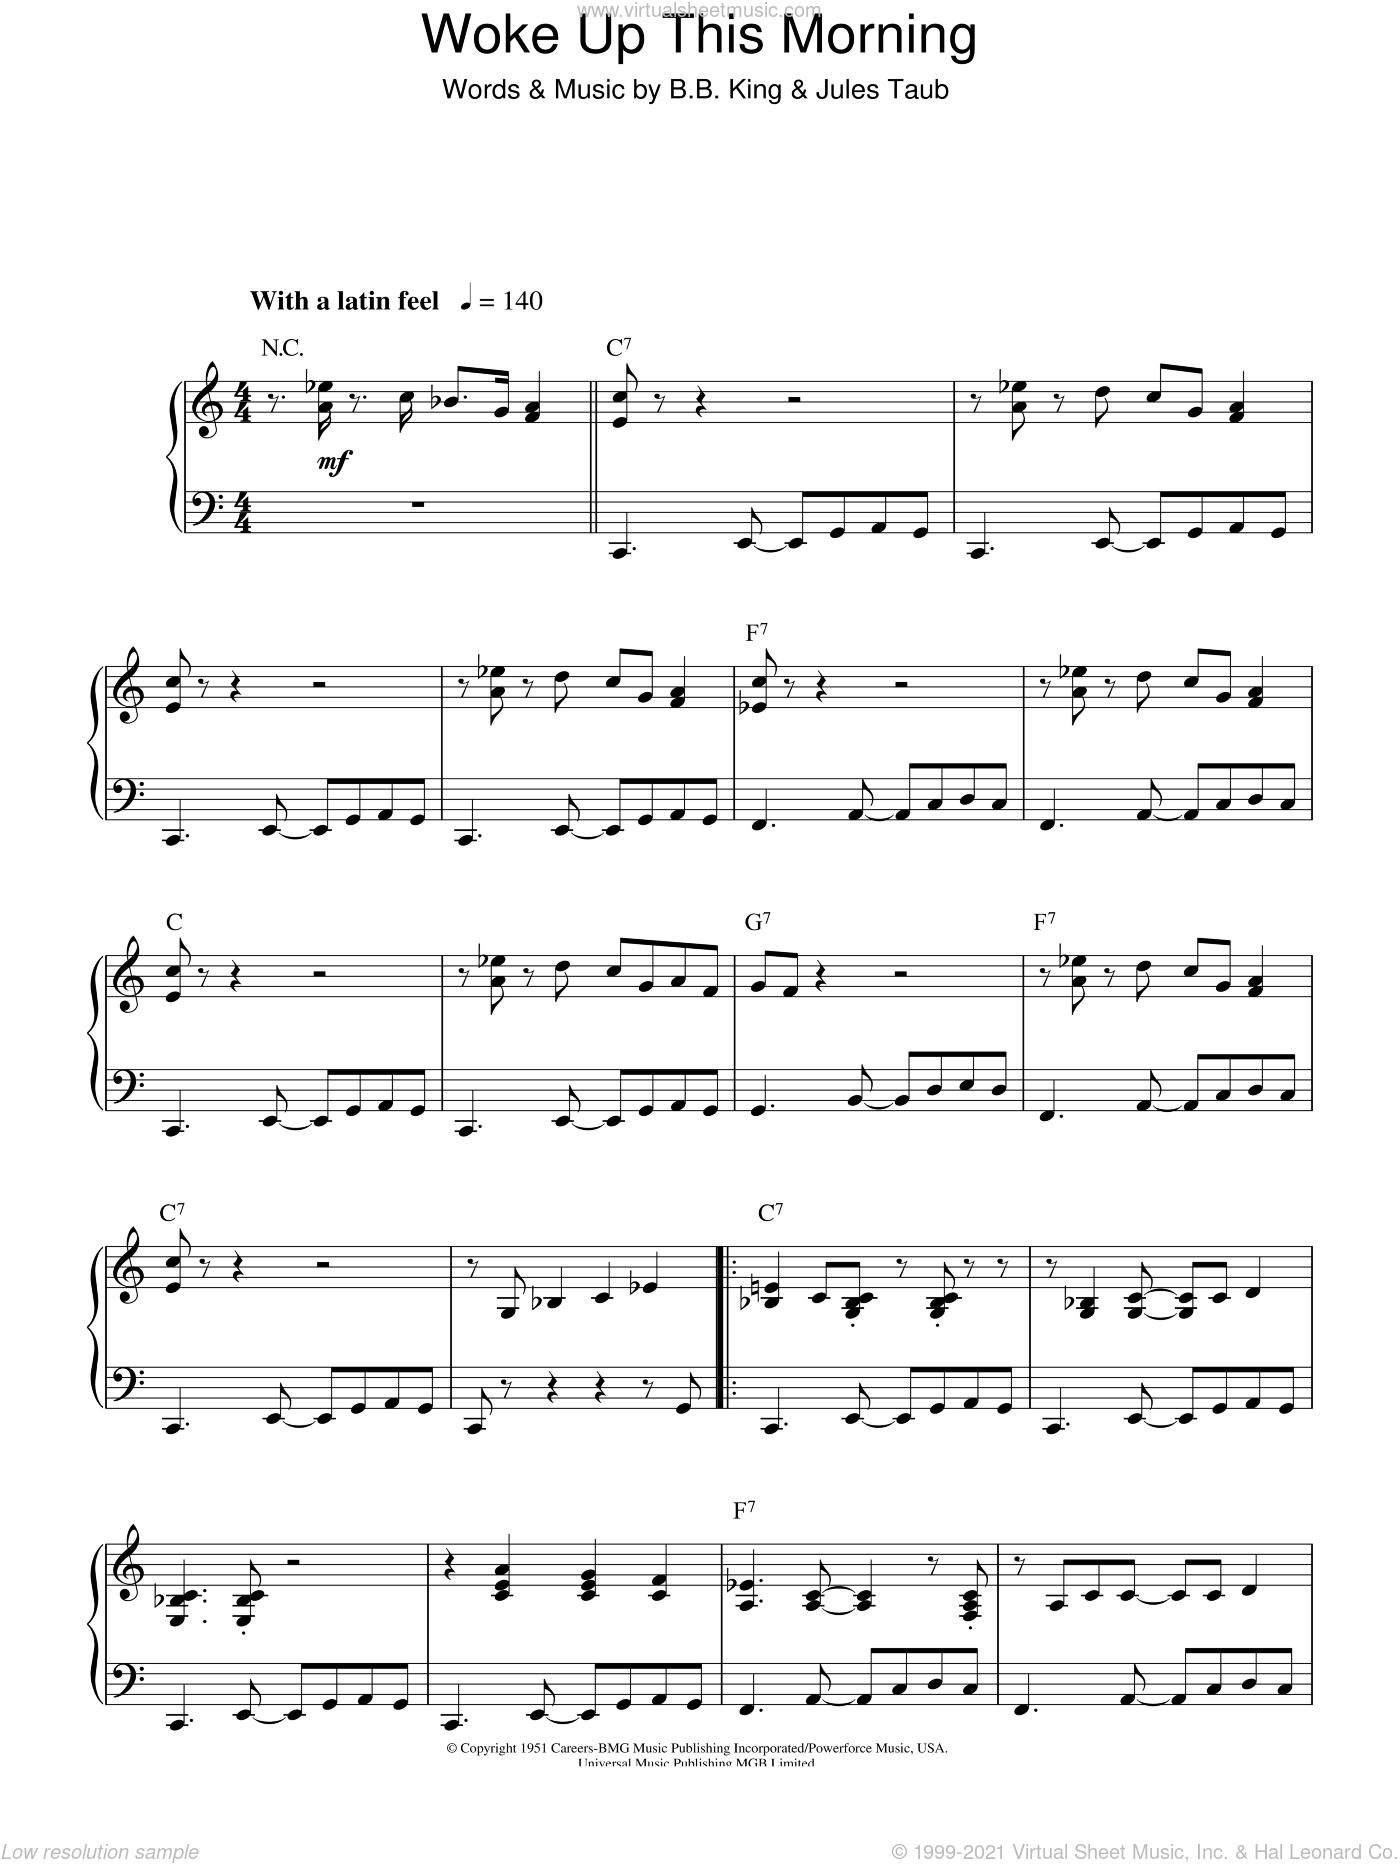 Woke Up This Morning sheet music for piano solo by Jules Taub